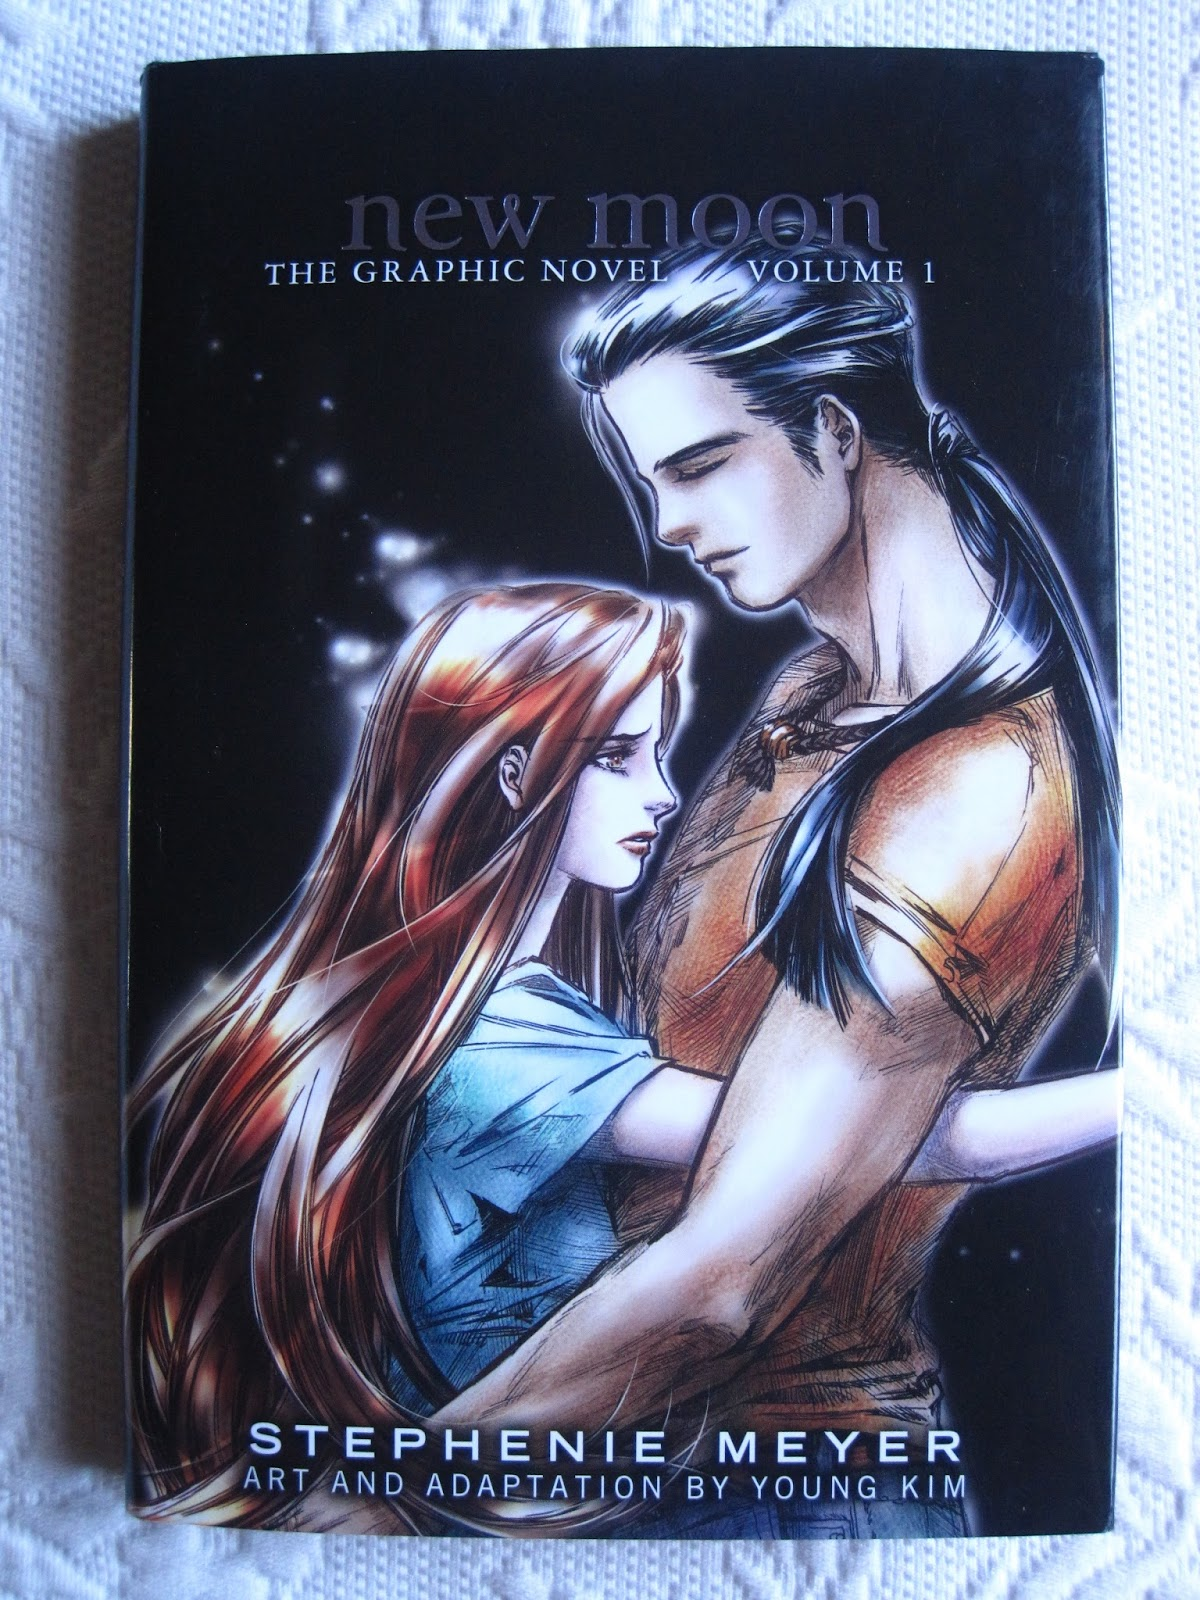 Twilight Graphic Novel Cover